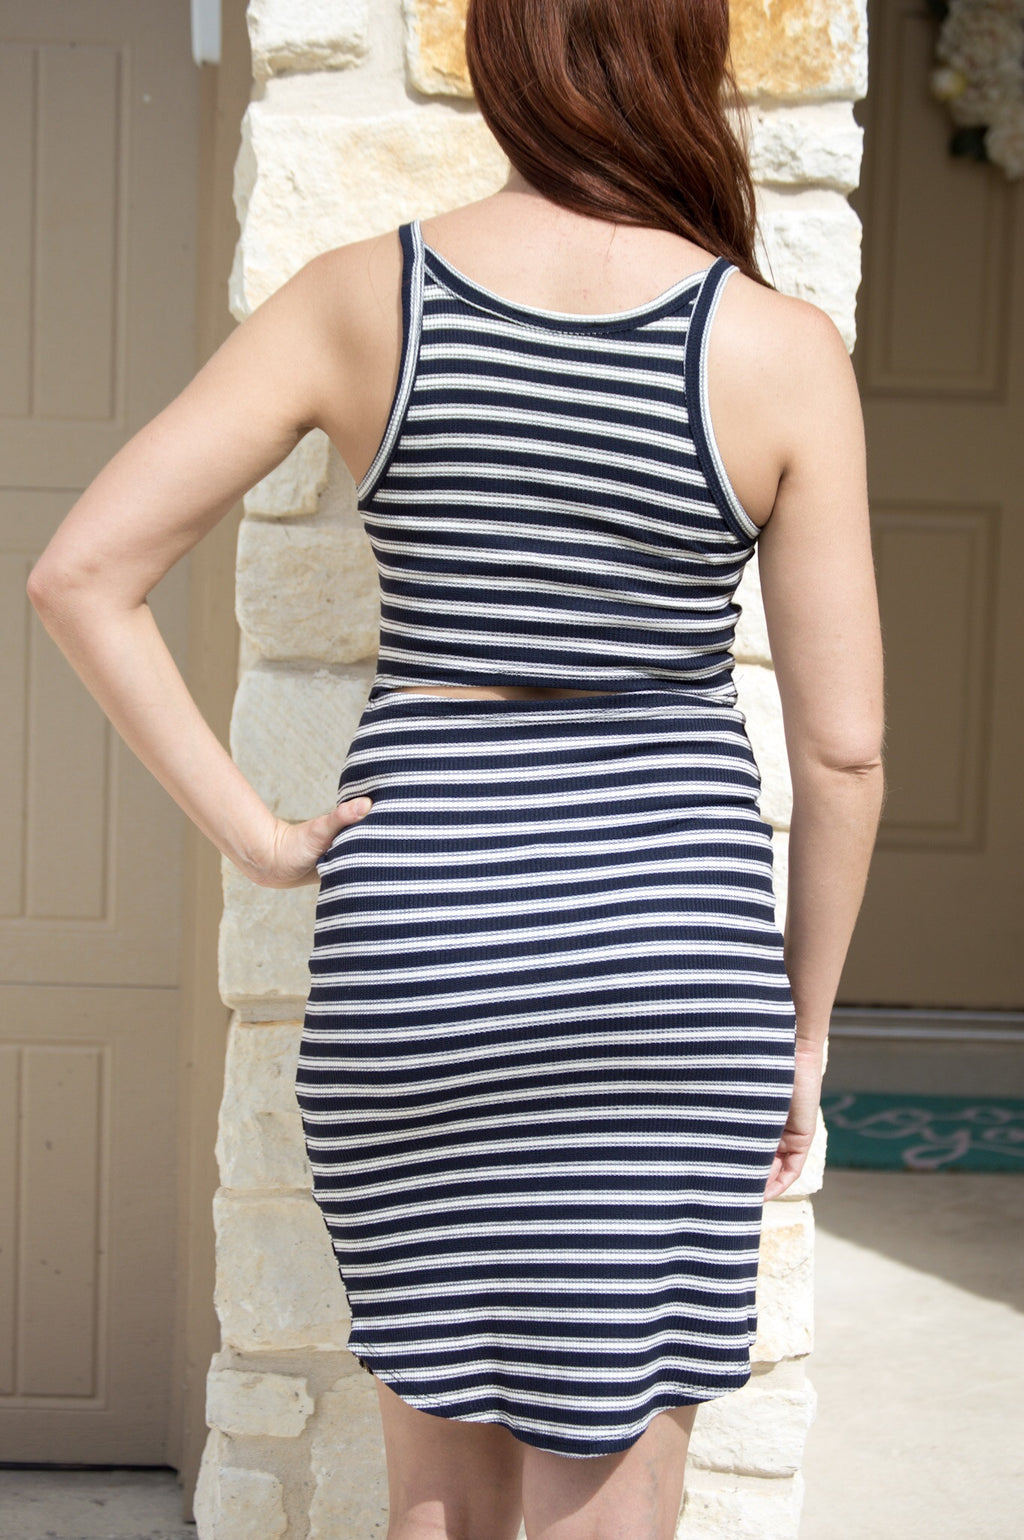 Spaghetti Ribbed Dress - Navy/White Stripes